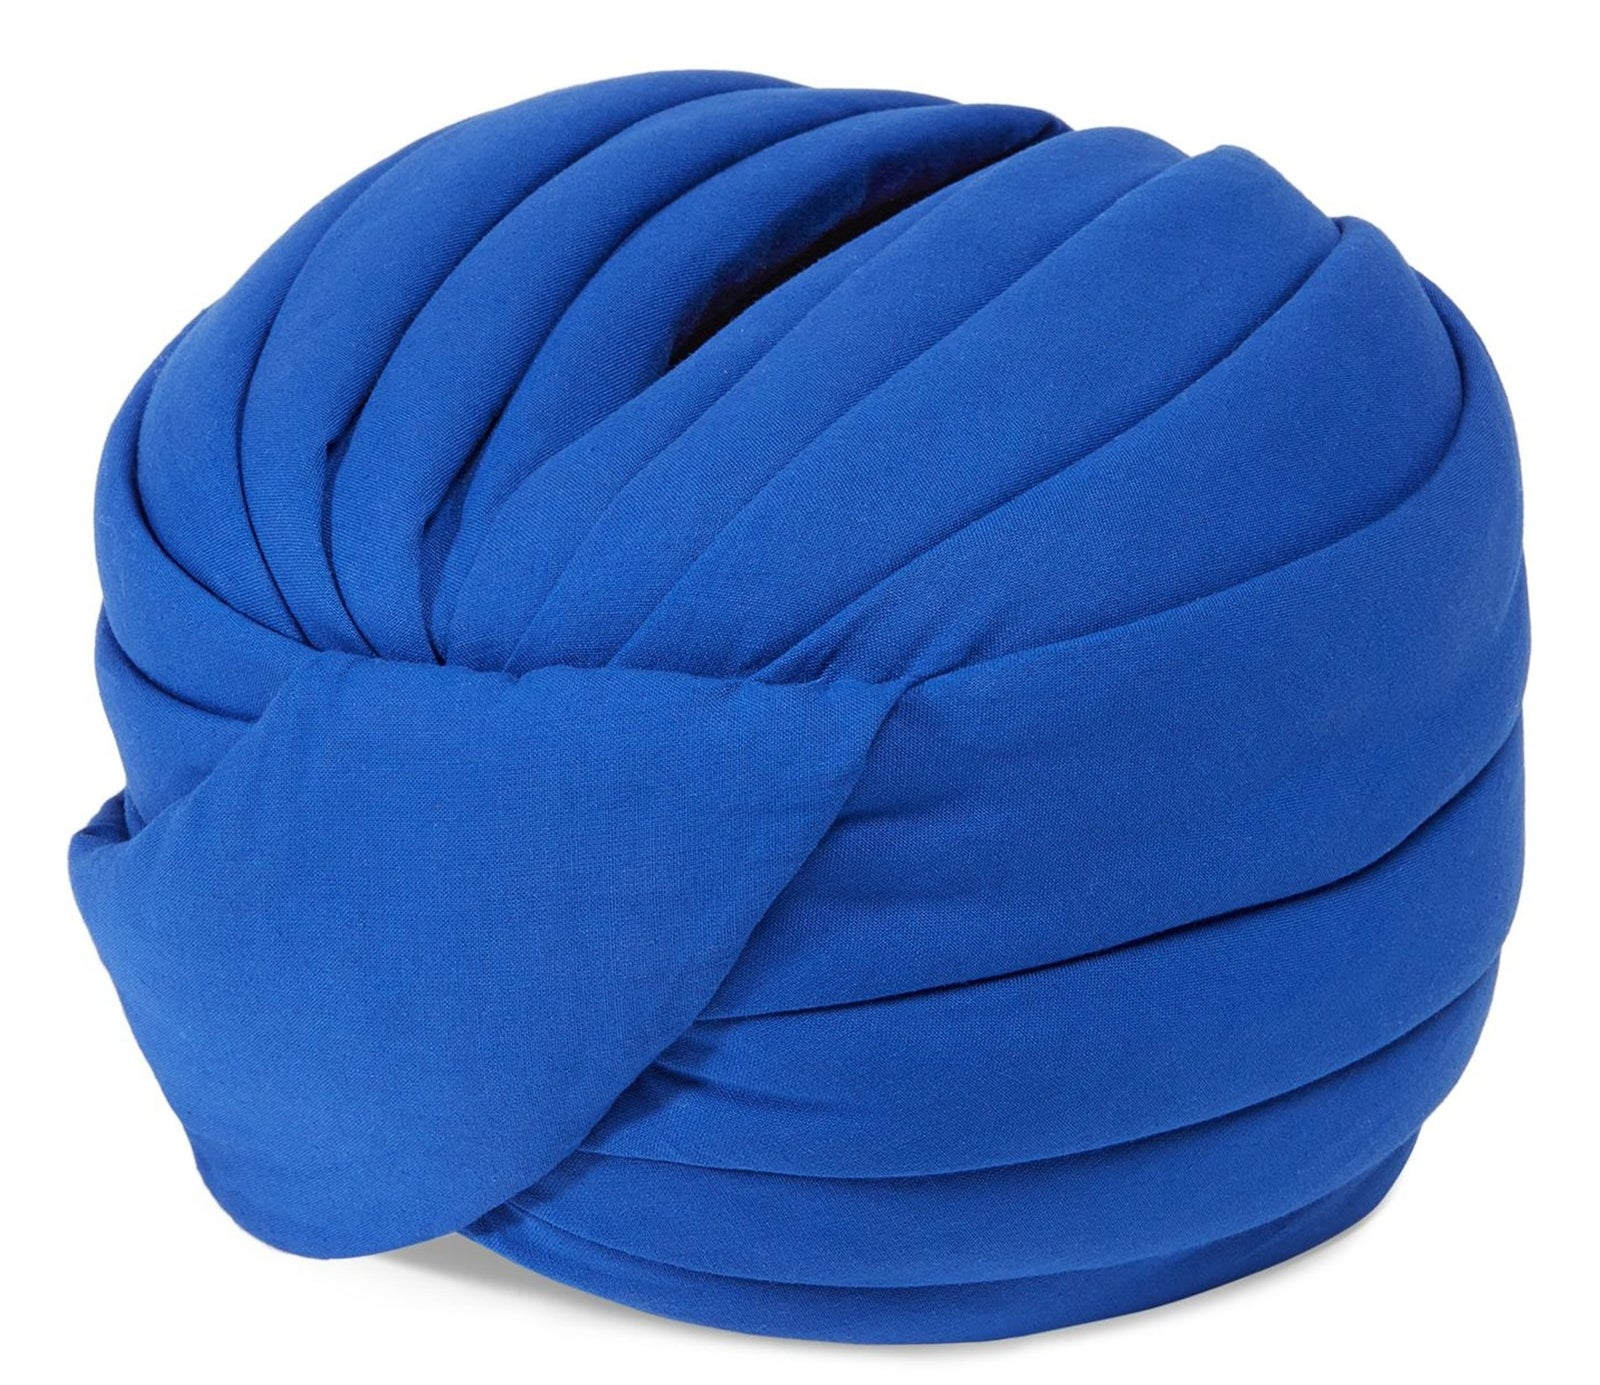 """On the Nordstrom website, the turban is described as a """"gorgeously crafted turban ... ready to turn heads while keeping you in comfort as well as trademark style."""""""